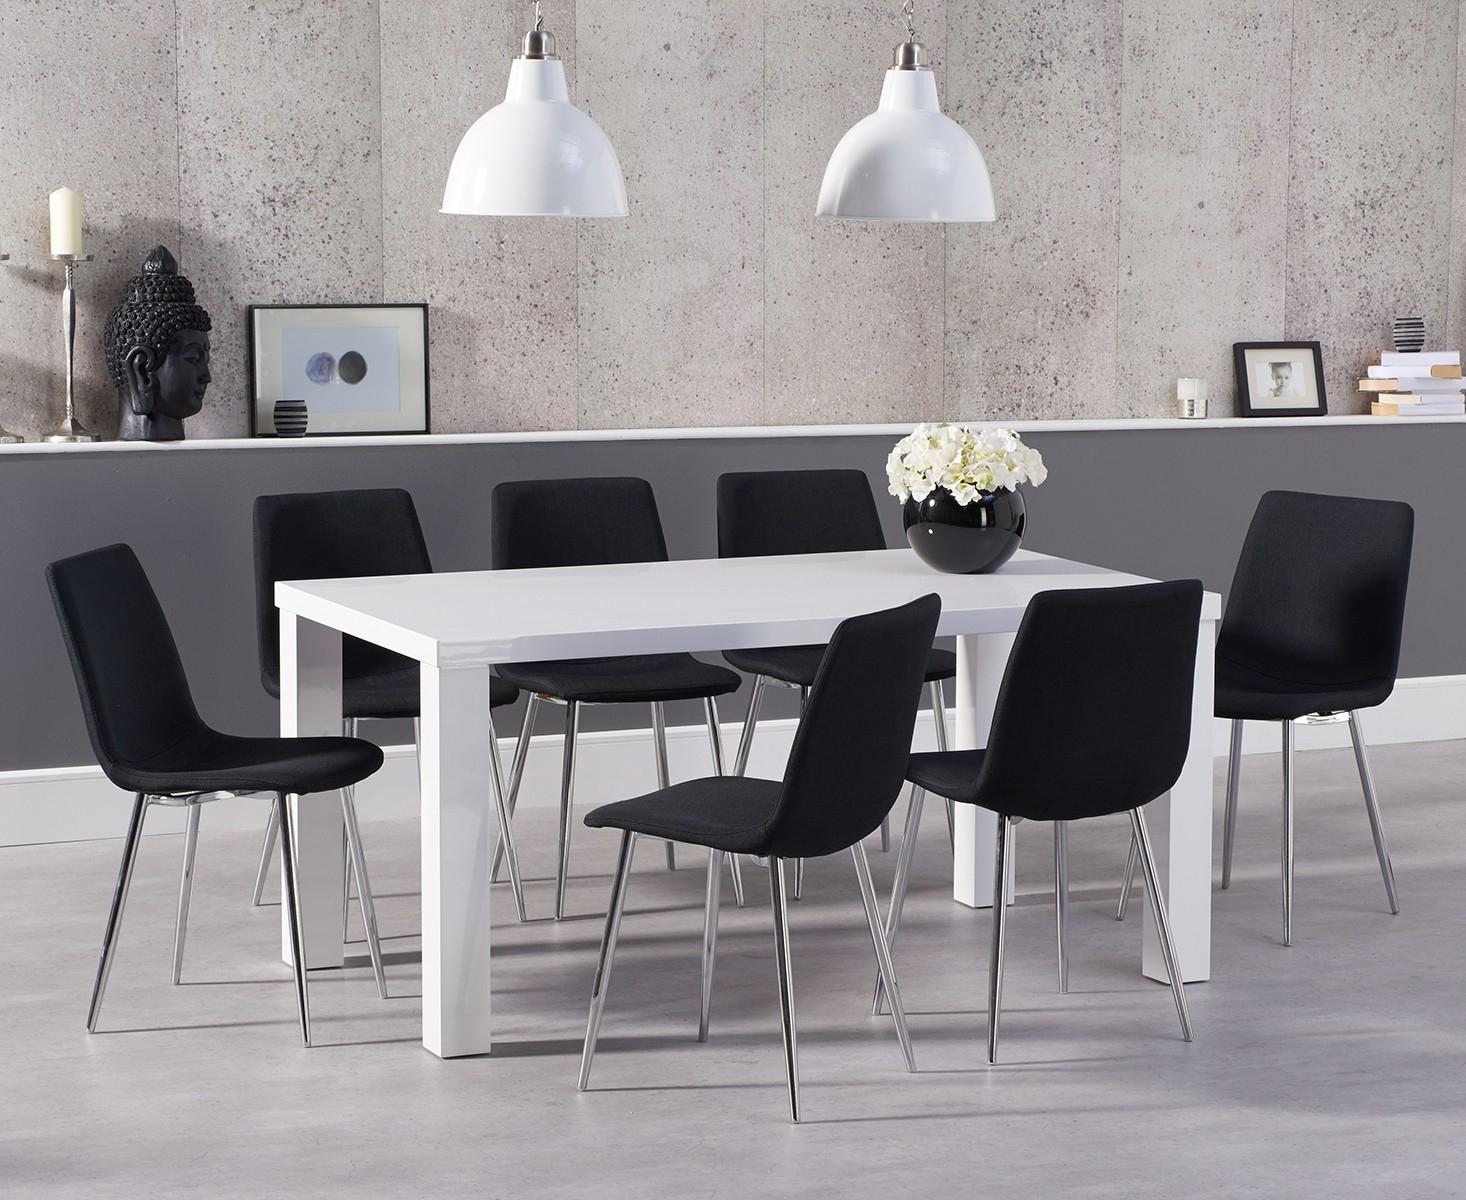 An image of Atlanta 160cm White High Gloss Dining Table with Hamburg Fabric Chrome Leg Chair...